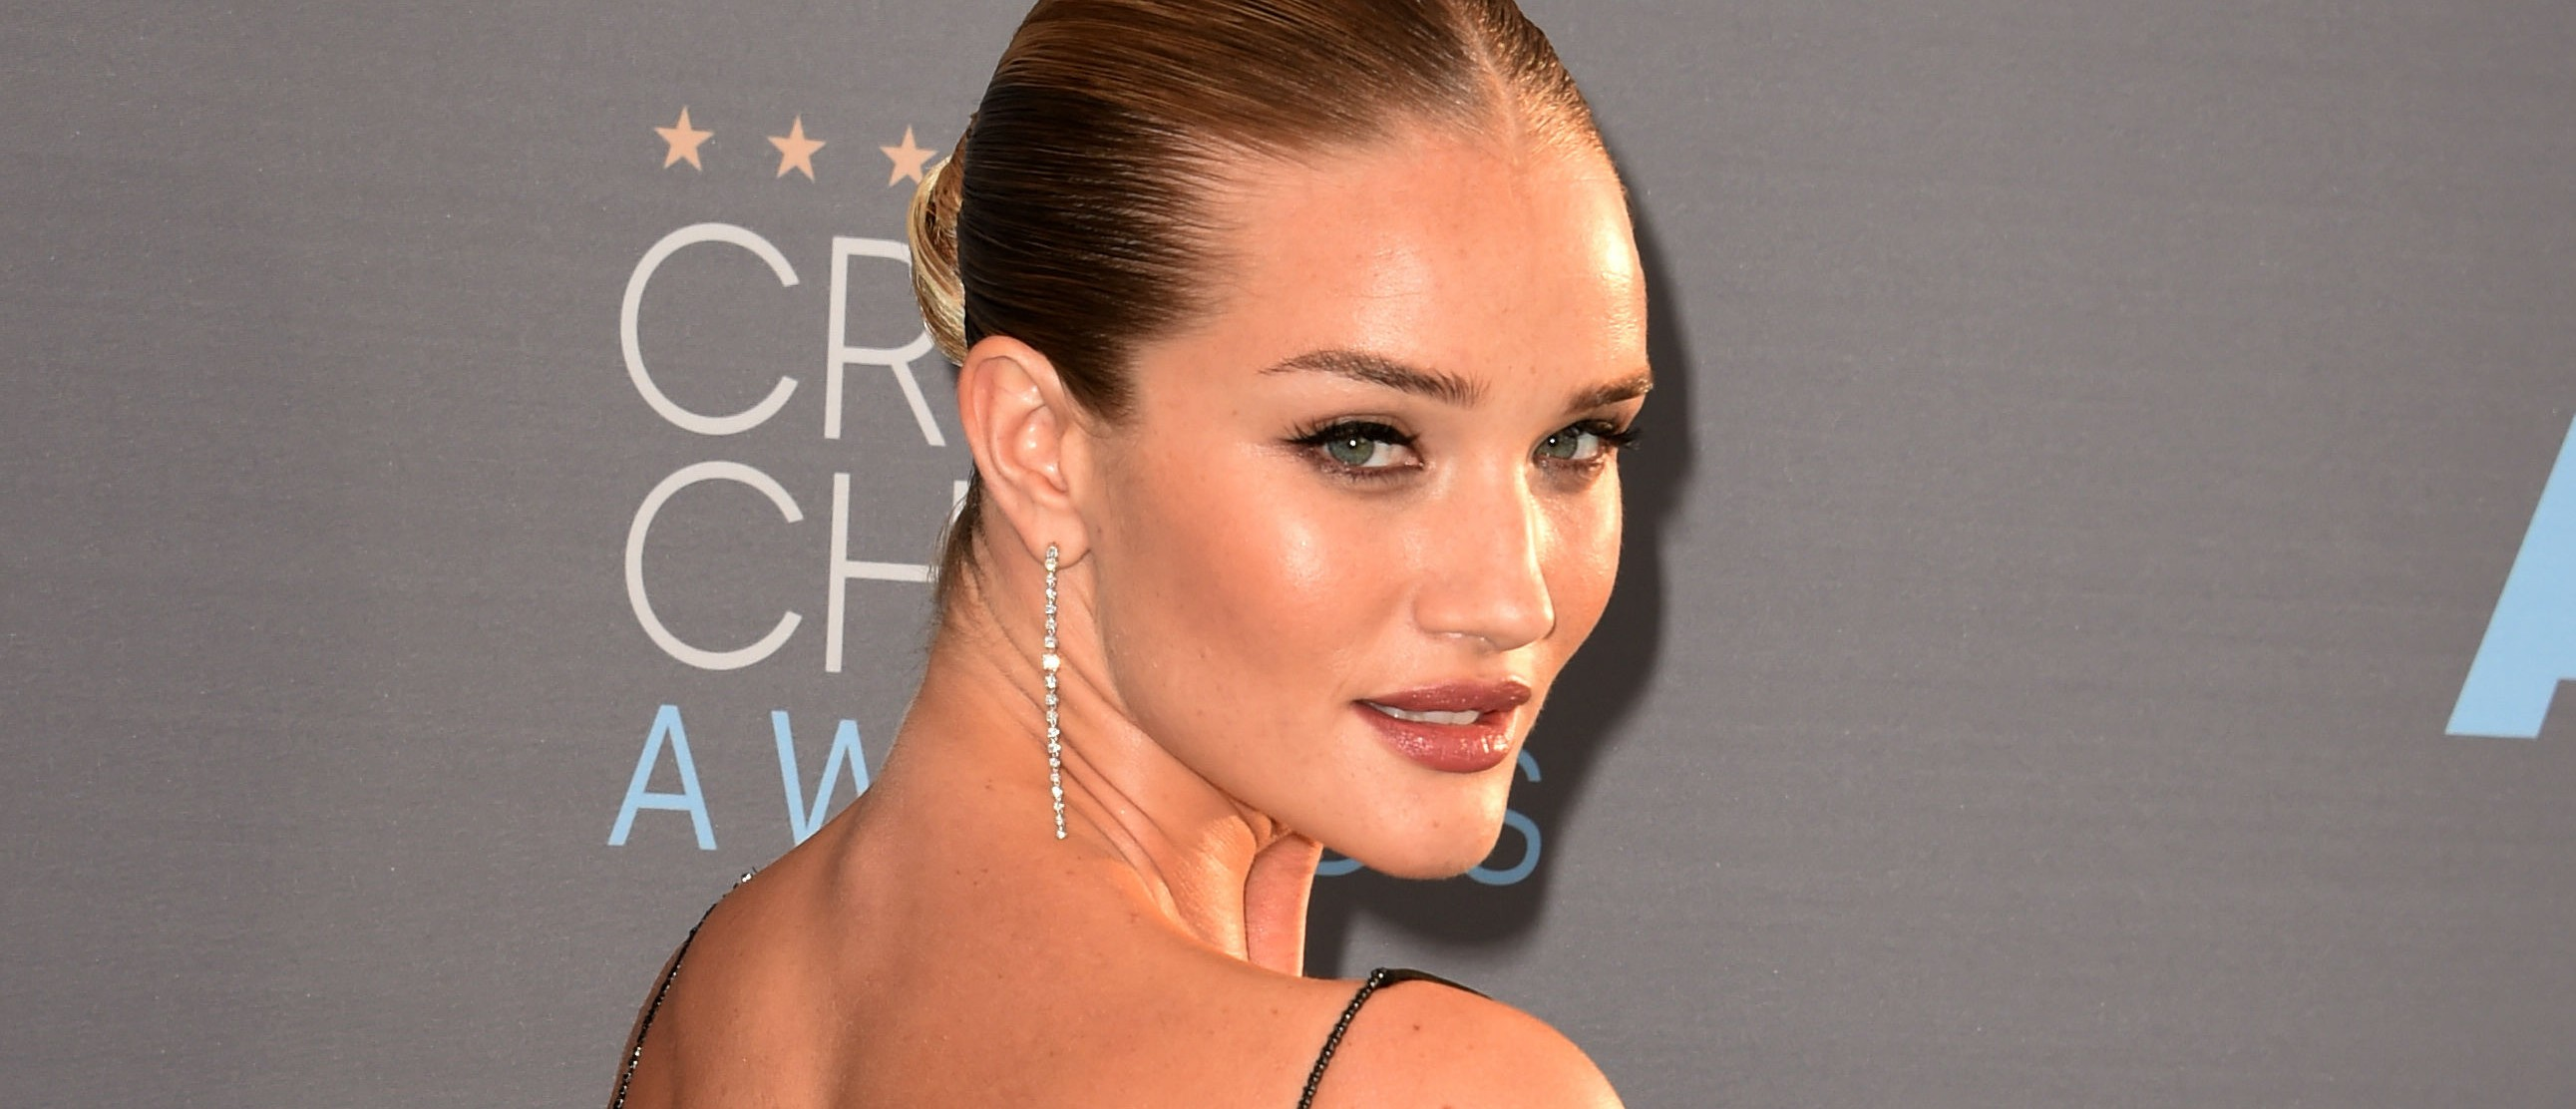 Rosie Huntington-Whiteley at the Critics Choice Awards. (Photo: Getty Images)